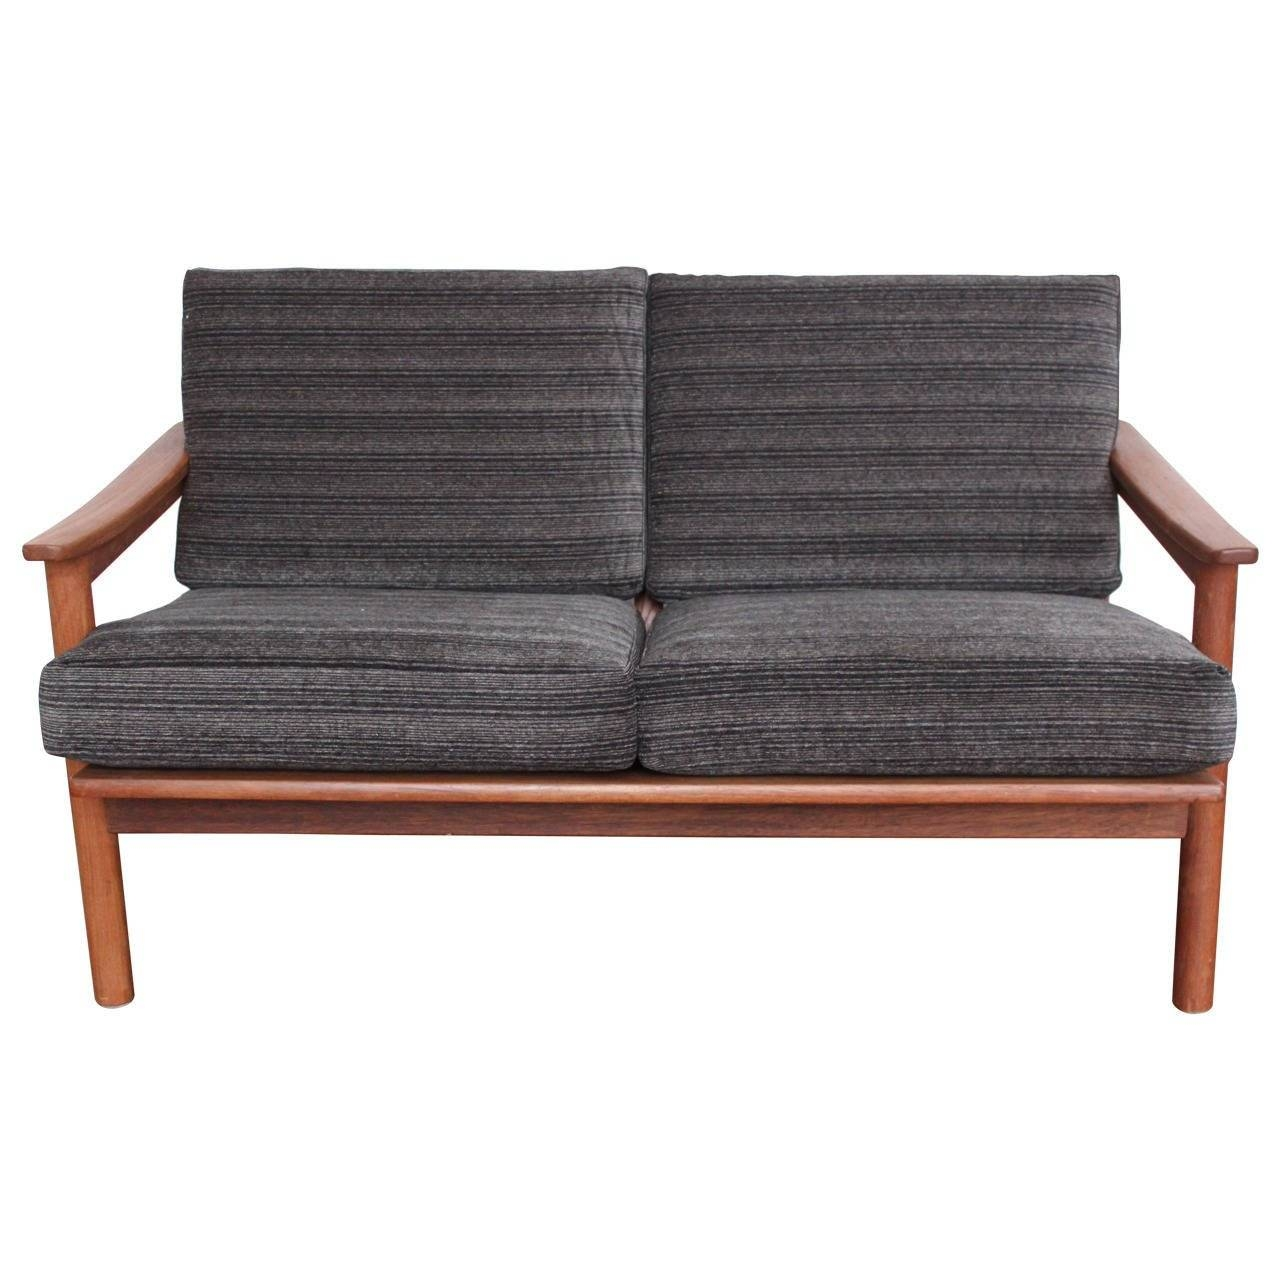 Mid-Century Modern Danish Teak Loveseat Sofa At 1Stdibs intended for Modern Danish Sofas (Image 12 of 15)